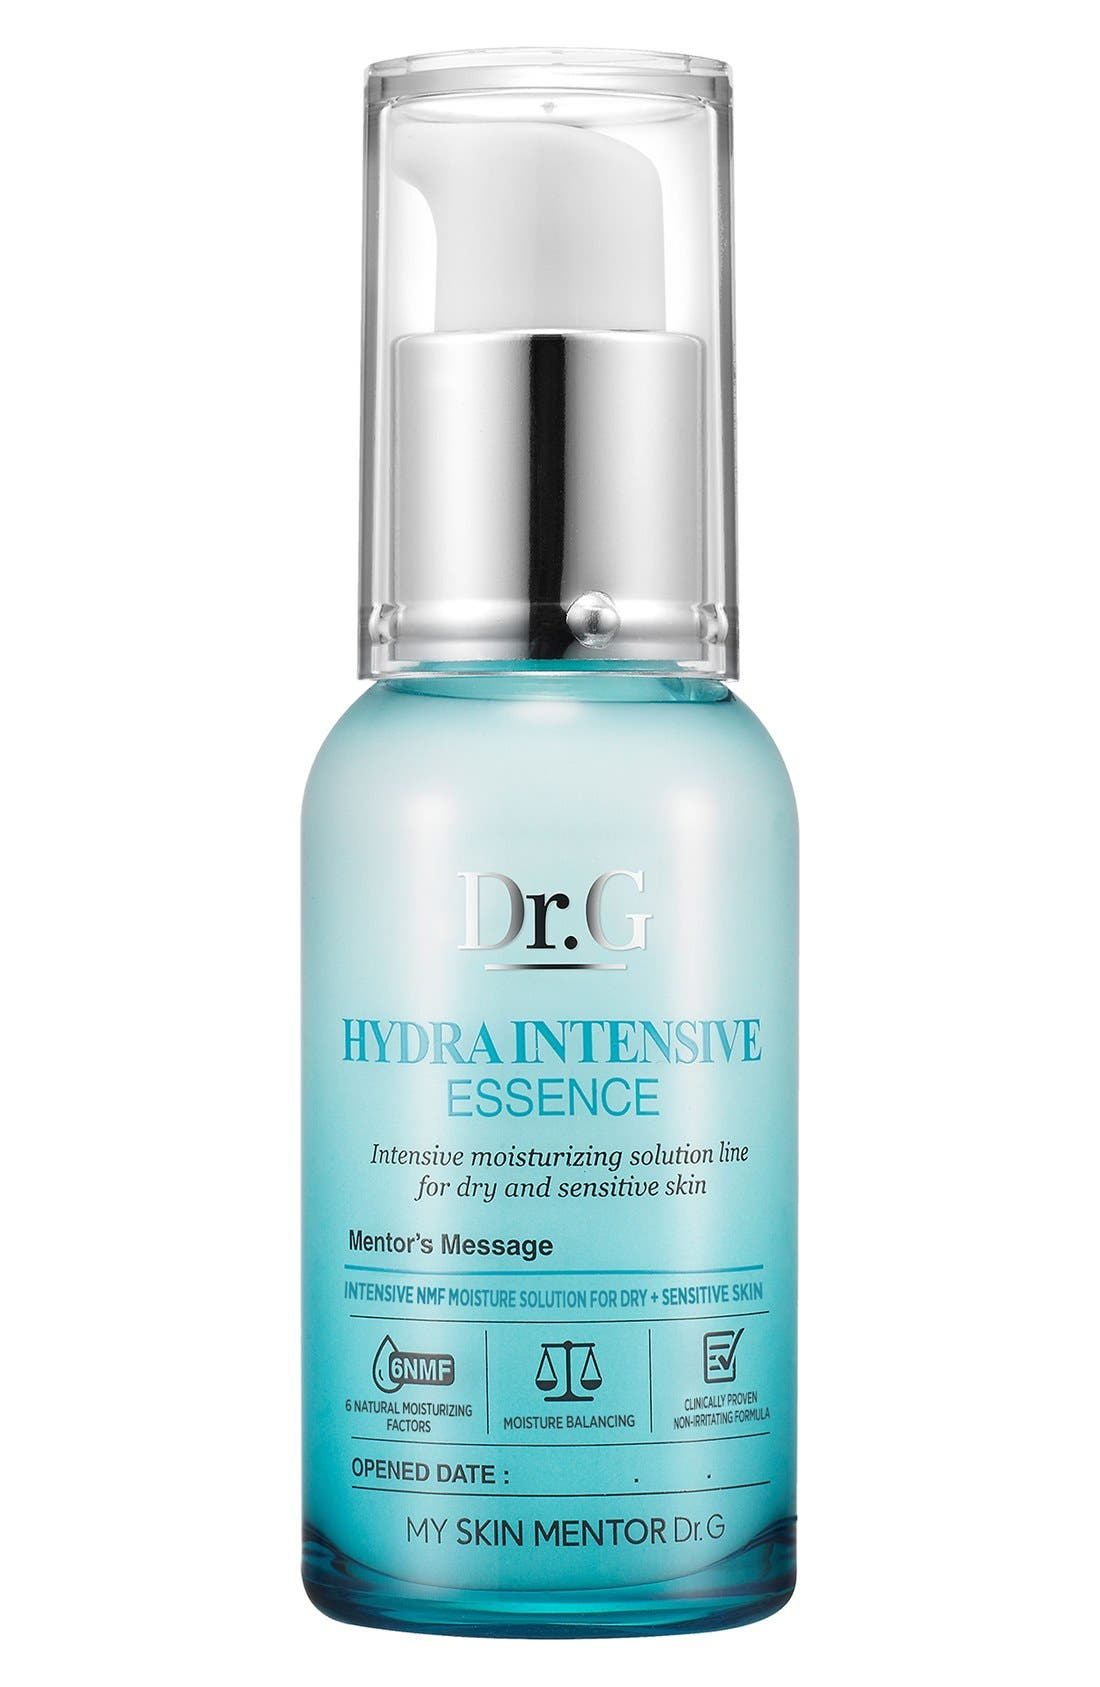 My Skin Mentor Dr. G Beauty Hydra Intensive Essence